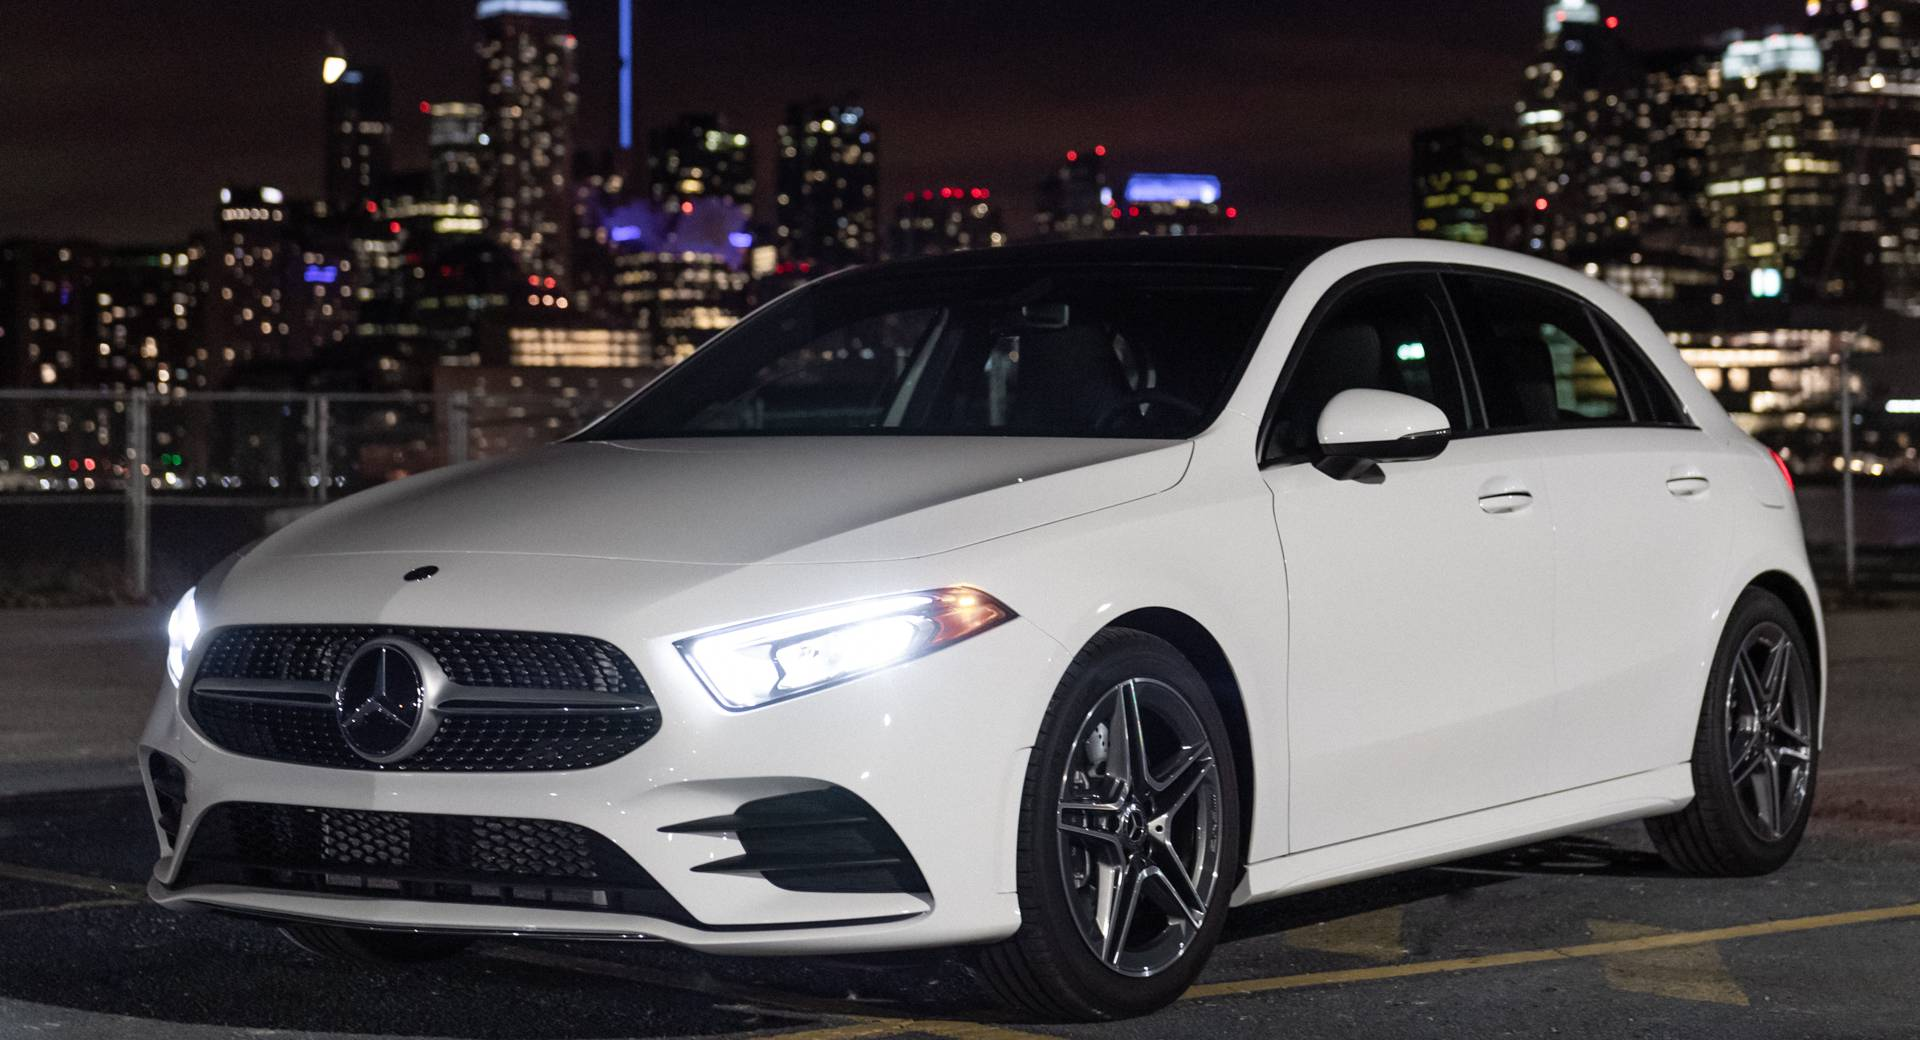 Canada Gets 2019 Mercedes A Class Hatch The US Does Not